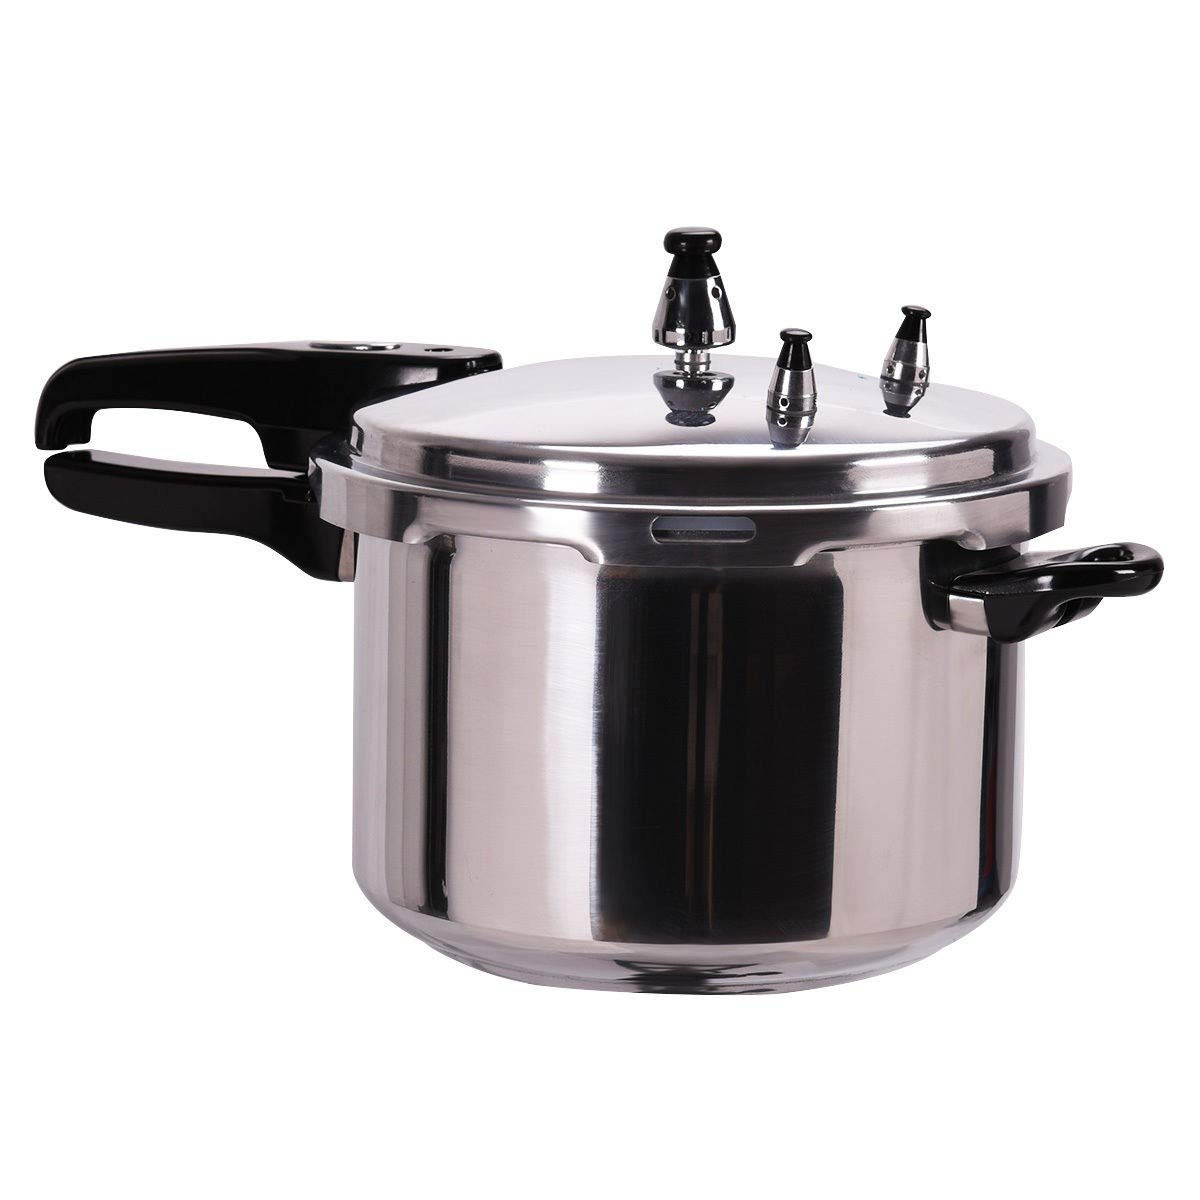 BeUniqueToday 6-Quart Aluminum Pressure Cooker Canner, Pressure Cooker With Multi-Safety Devices, Cooker 6 Quart Aluminum Pressure Canner Pot Kitchen Fast New Cooking Tool, Pressure Cooker Canner